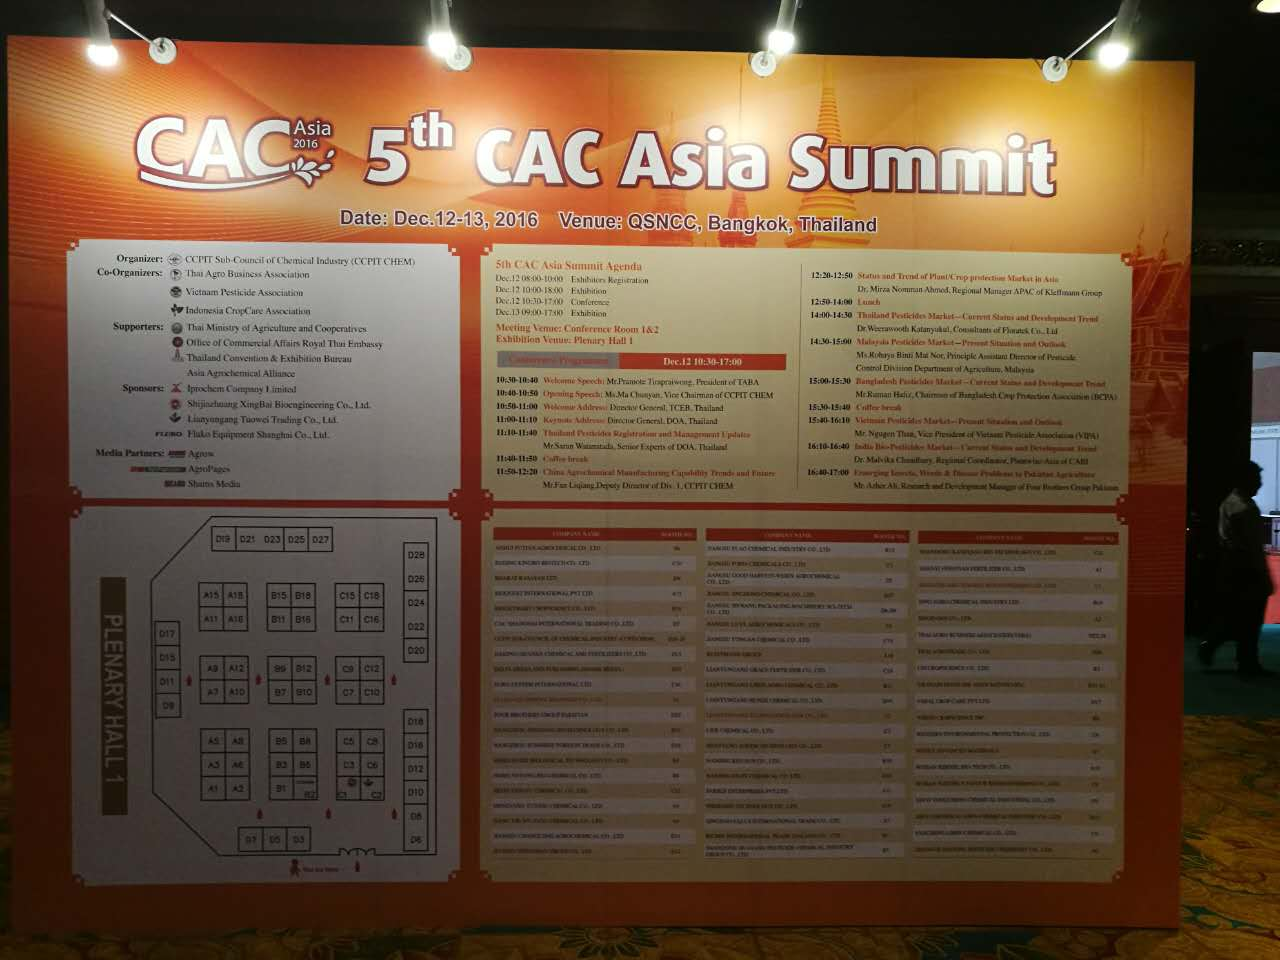 2016 5th CAC Asia Summit